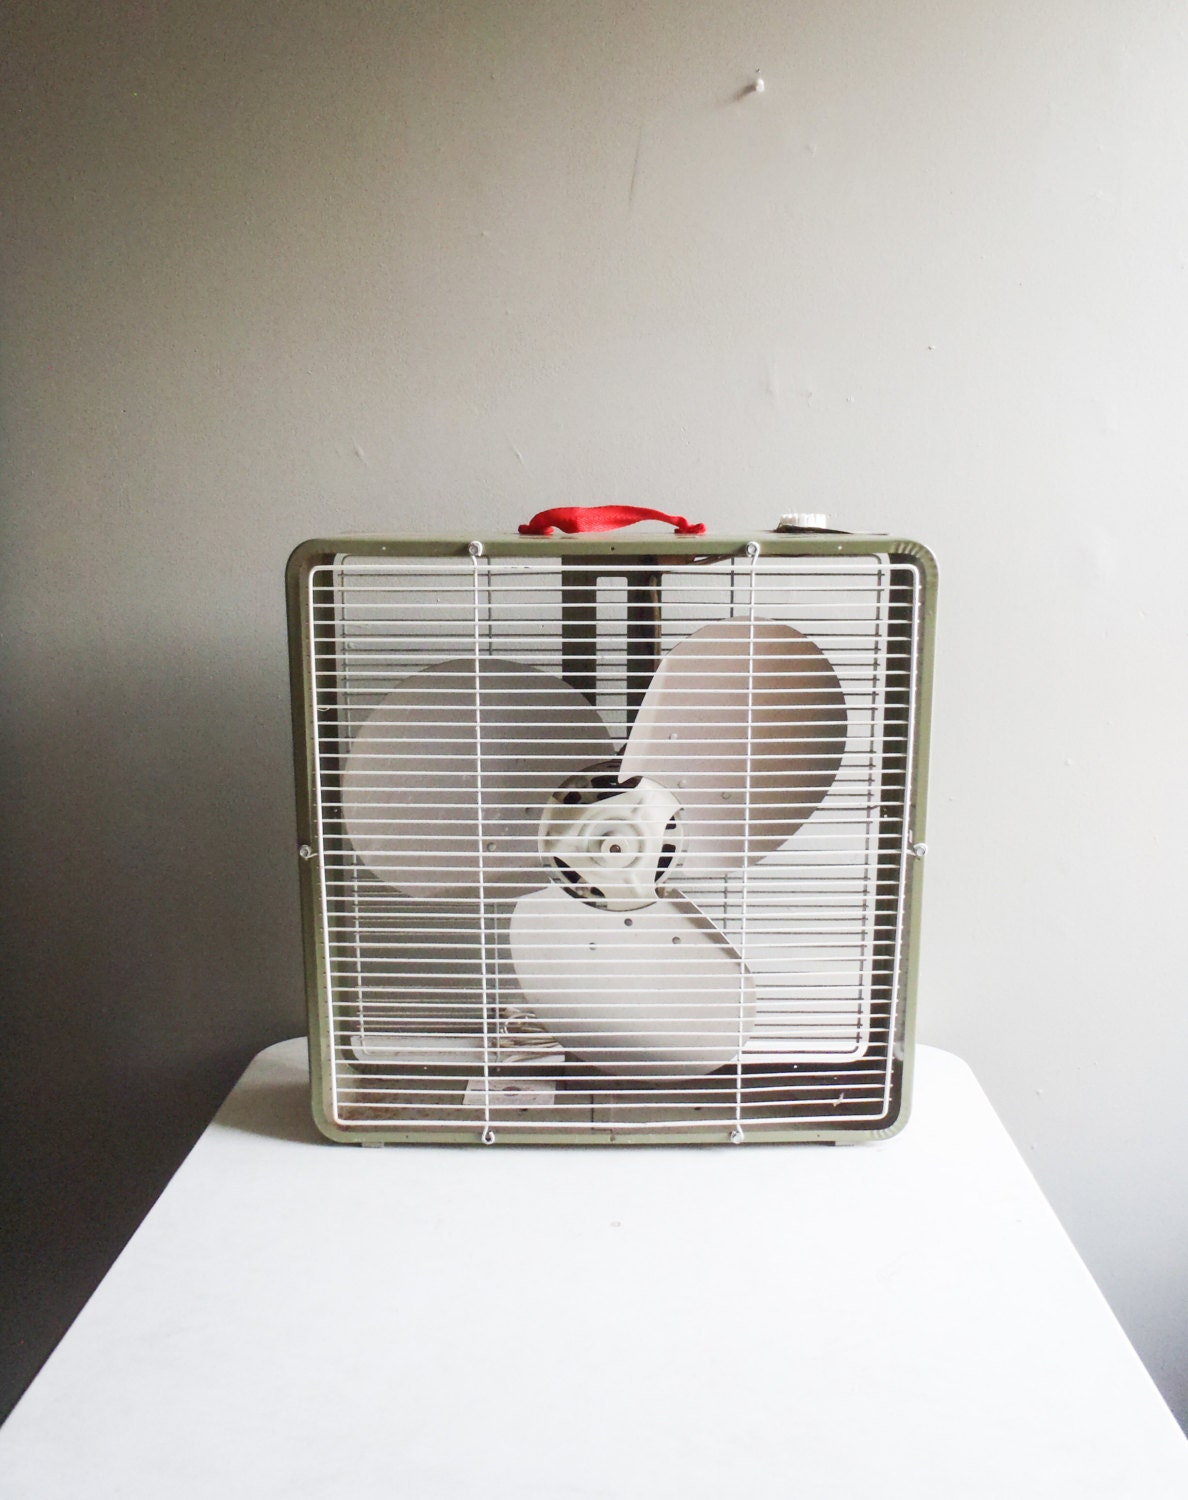 Industrial Box Fan : Vintage industrial box fan olive green with red canvas strap